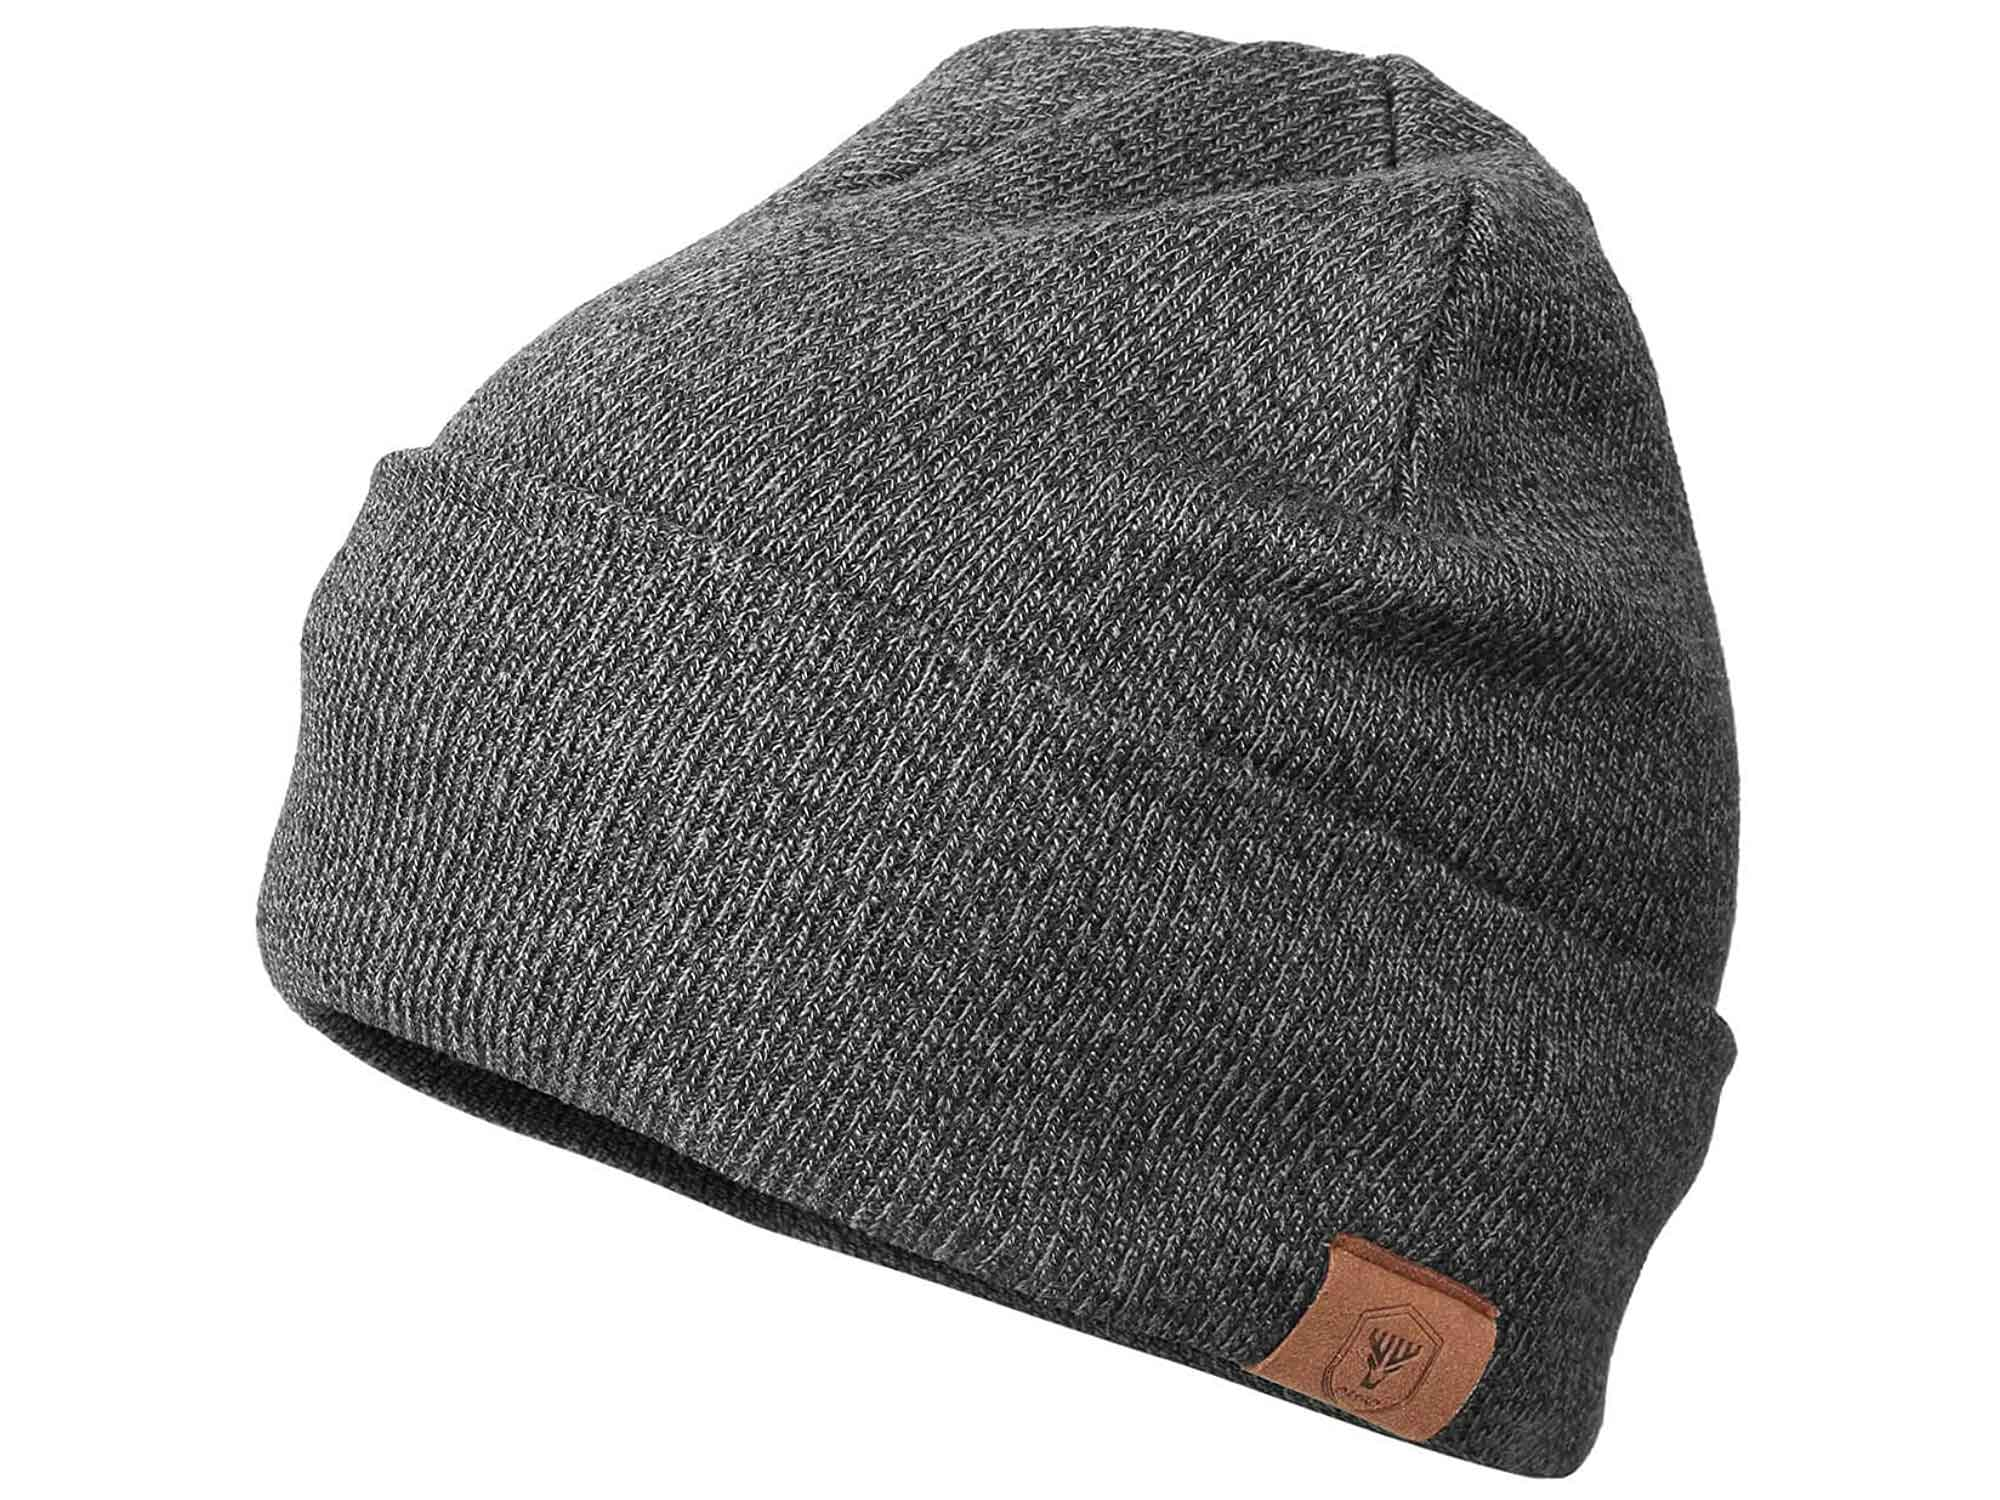 OZERO Daily Skully Beanie Hat, Warm and Soft Knitting Stretch Cap to Fit Most Black/Gray/Purple/Navy Blue/Maize Yellow